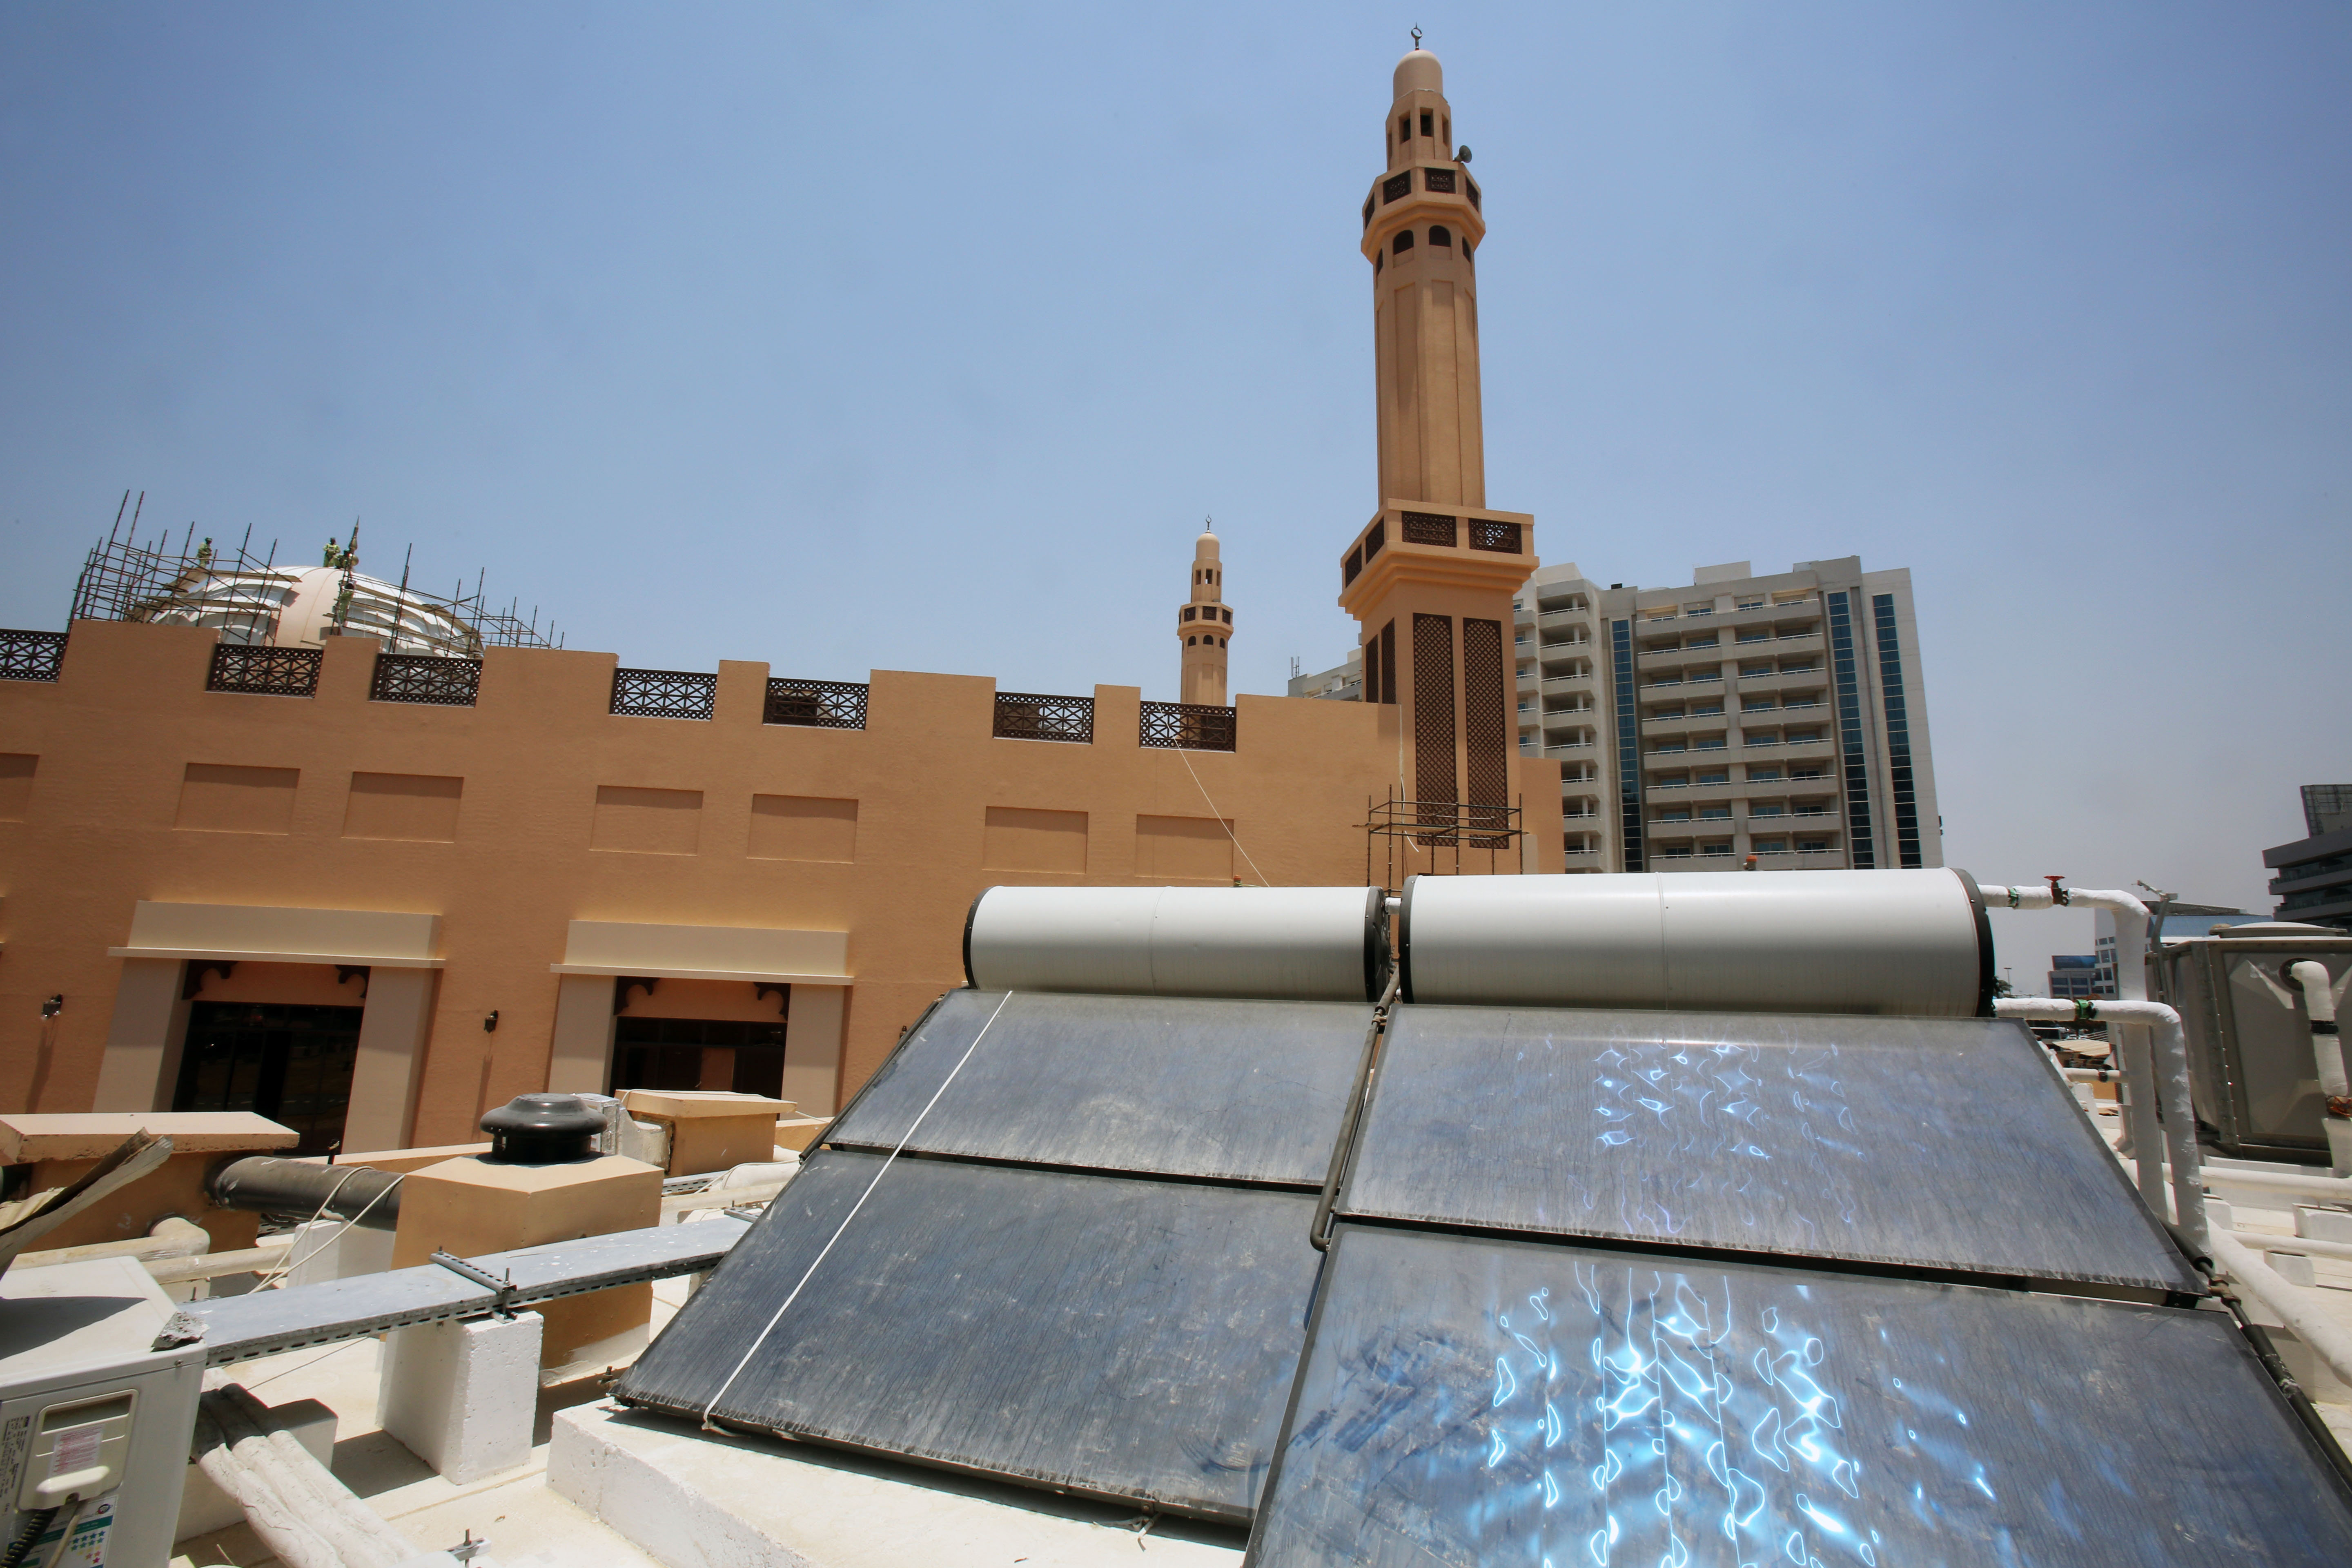 Solar panels are set on the roof of the first green mosque in Dubai, United Arab Emirates, May 18, 2014. (AP Photo/Kamran Jebreili)